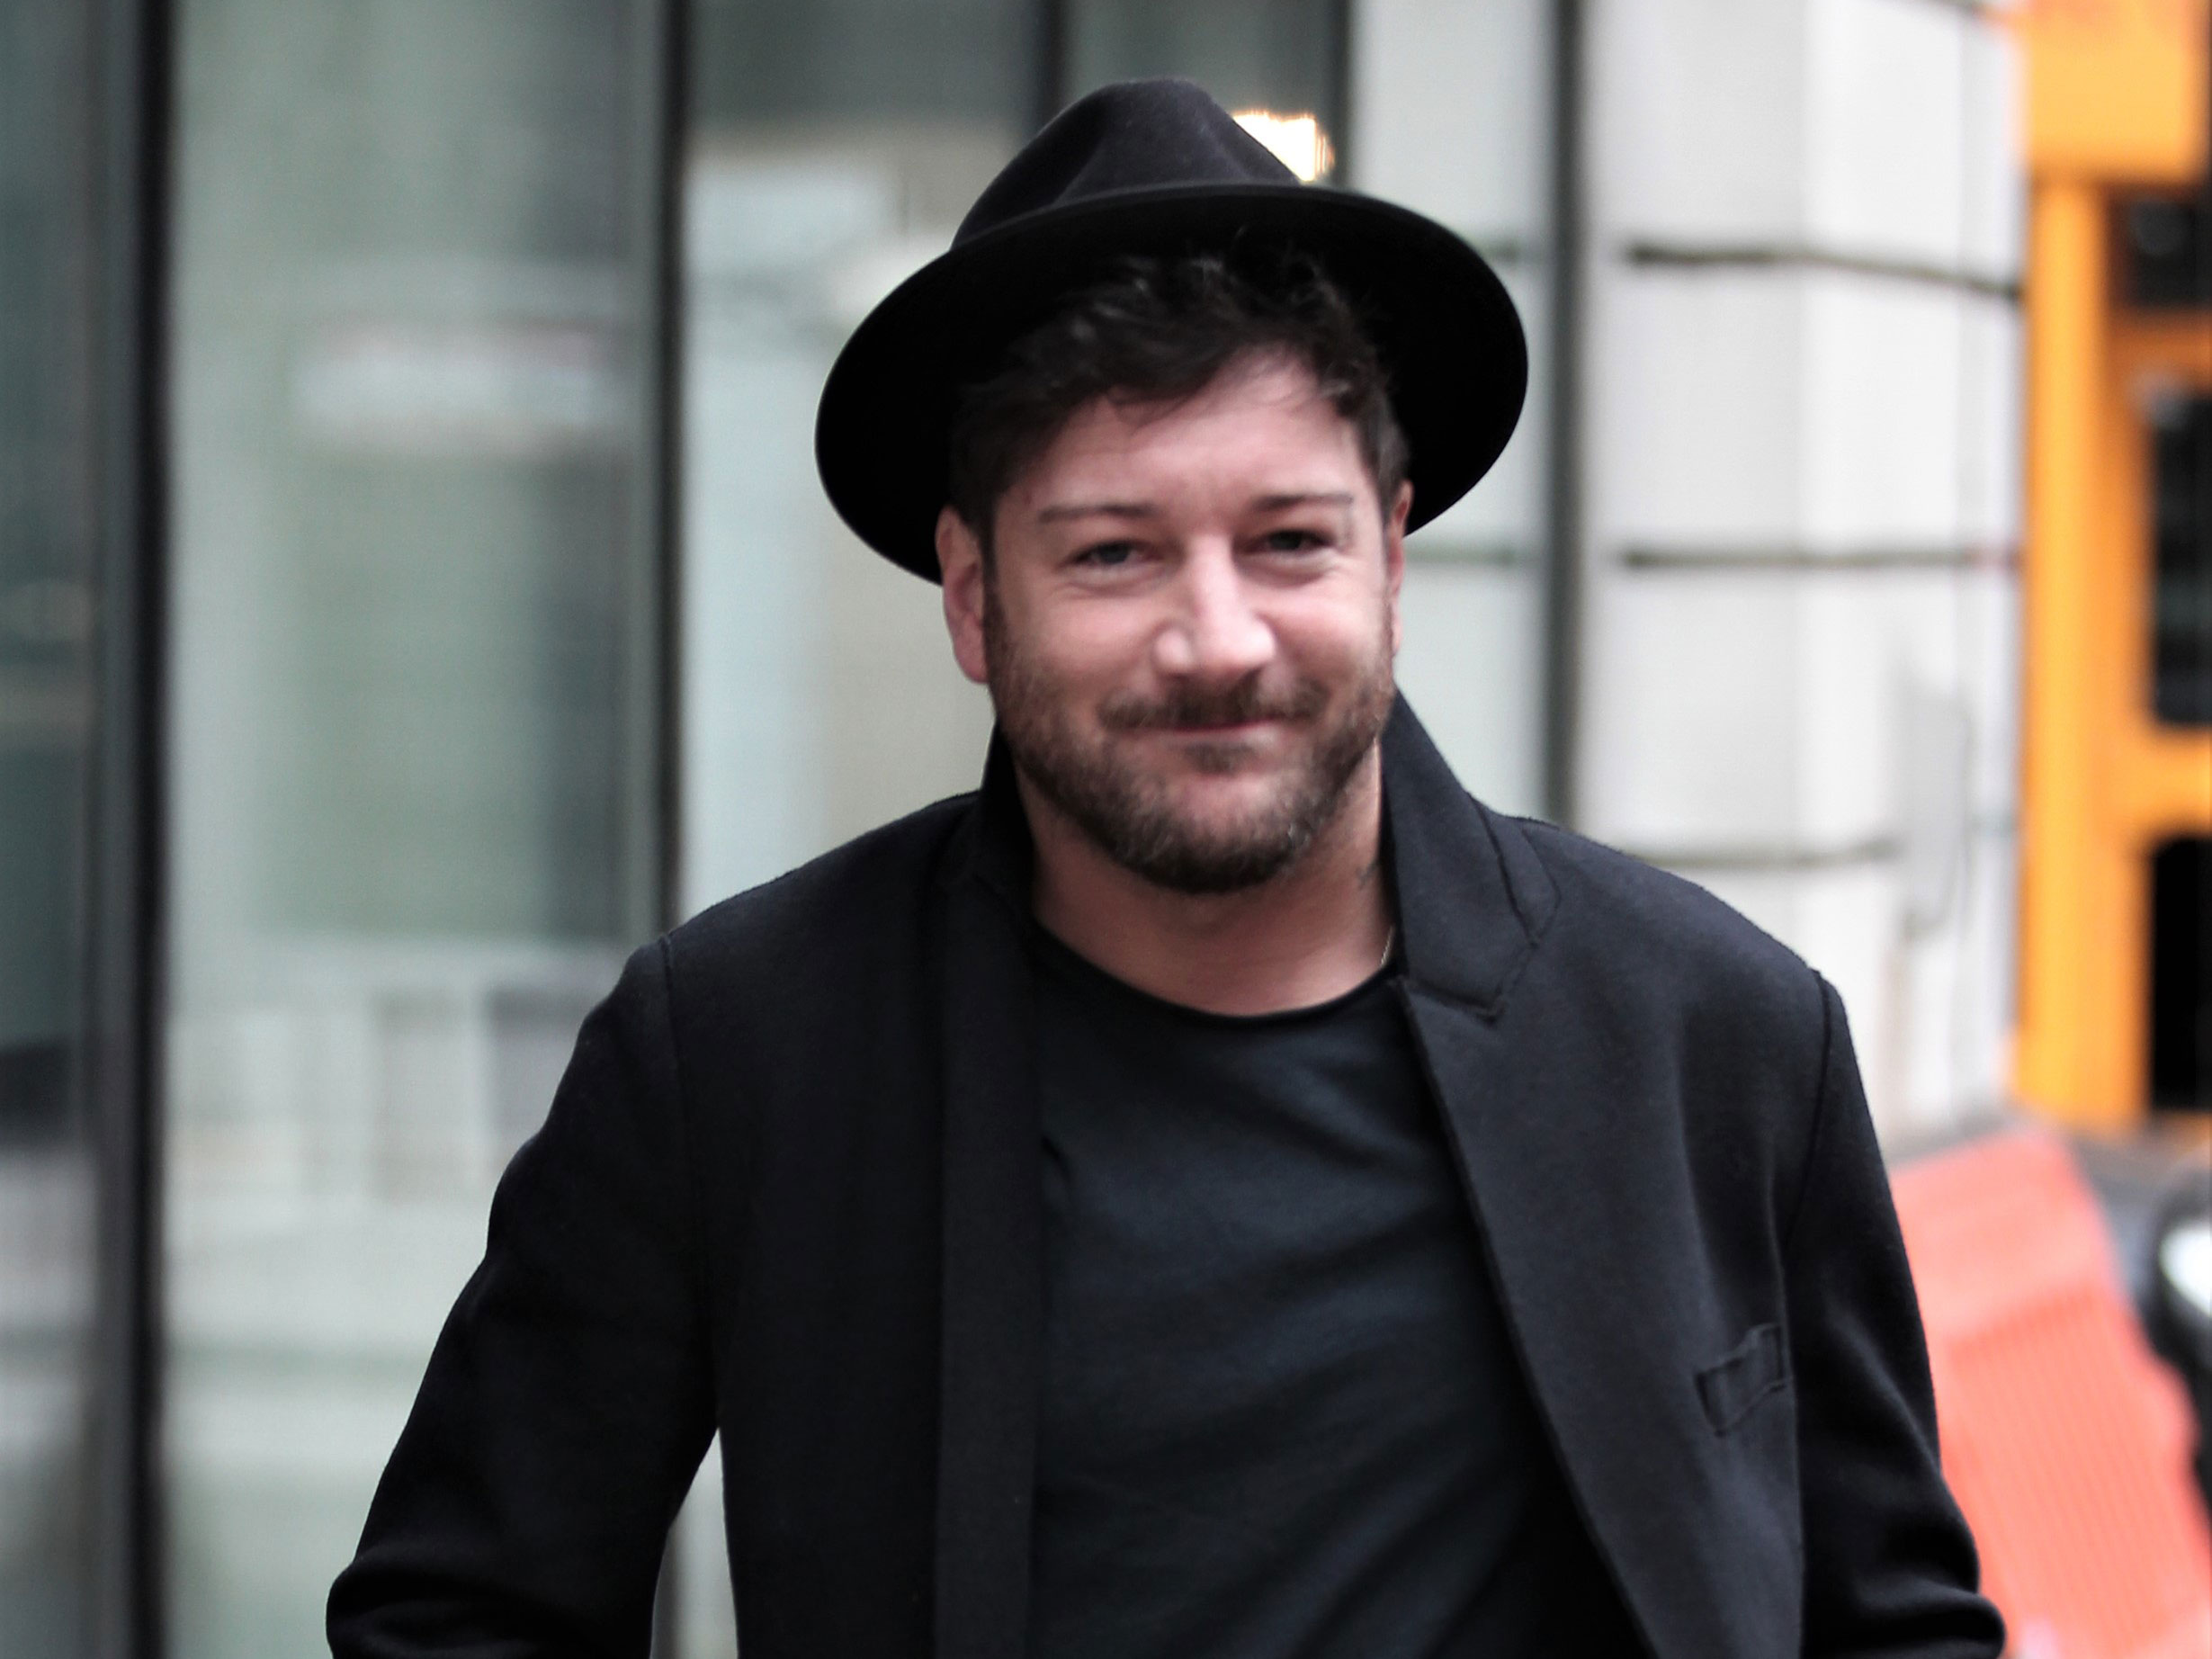 Matt Cardle finally breaks silence on swapping social media messages with Meghan Markle